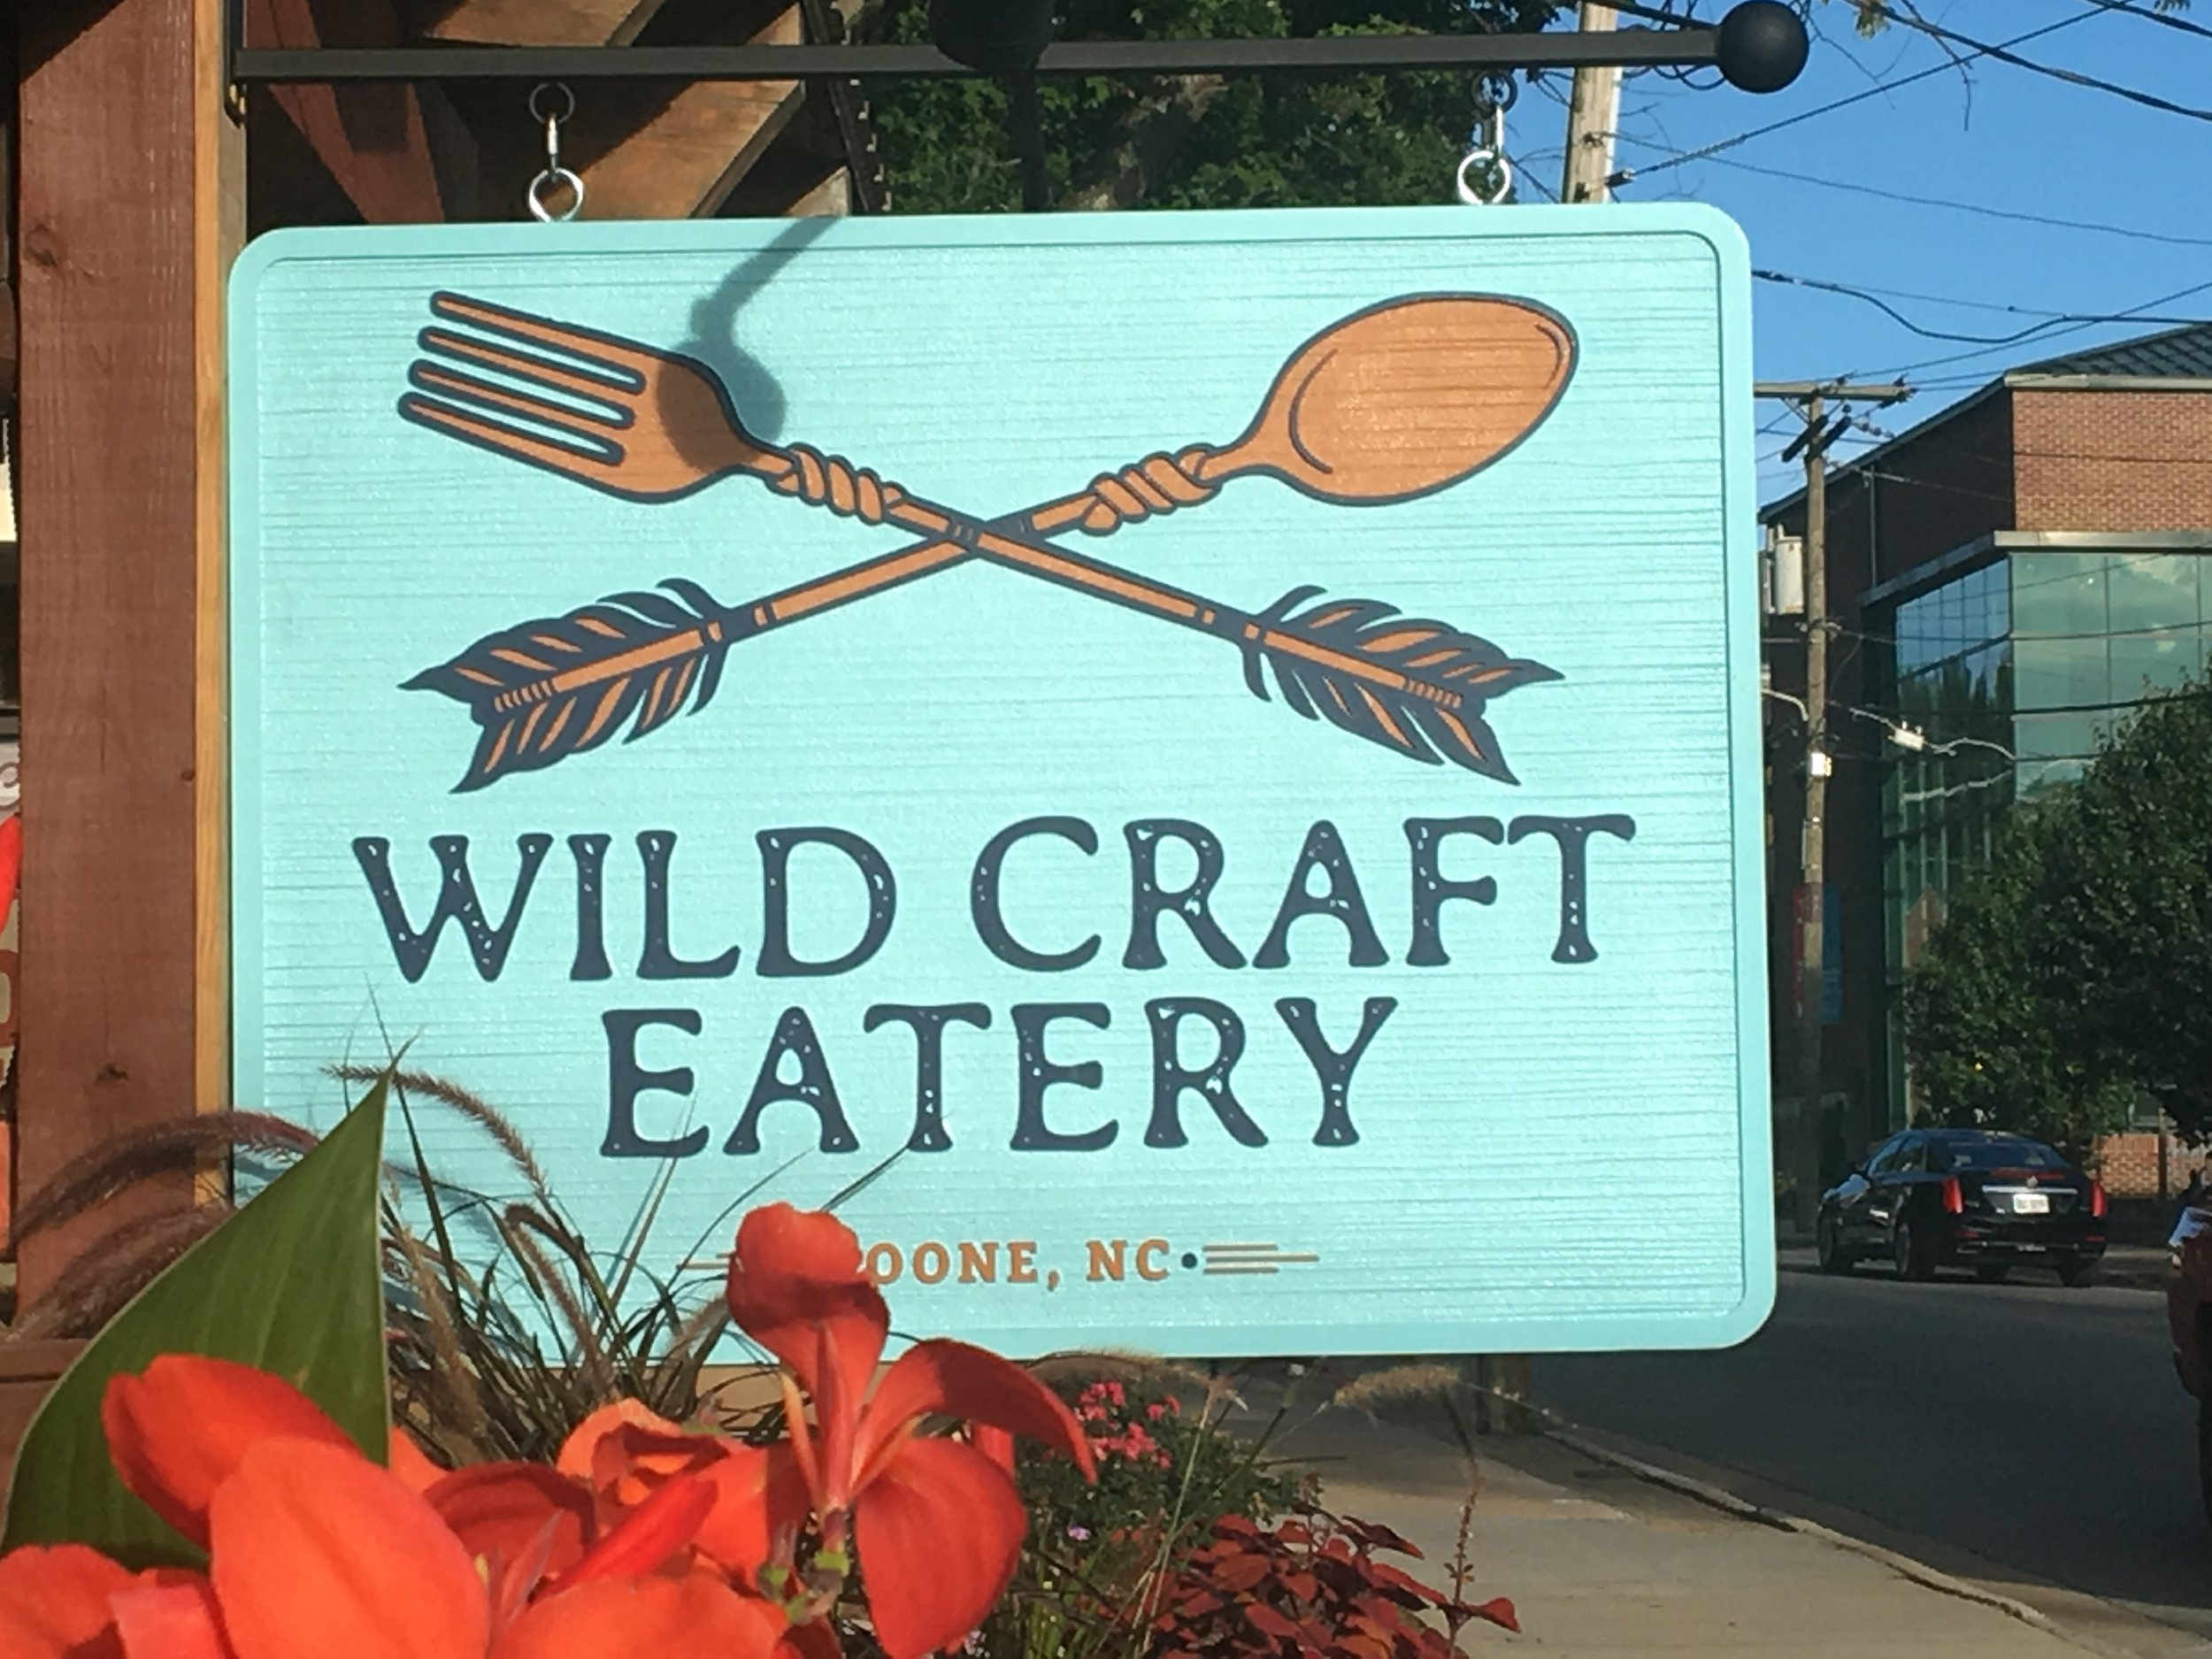 New Wild Craft Eatery logo and outdoor signage.